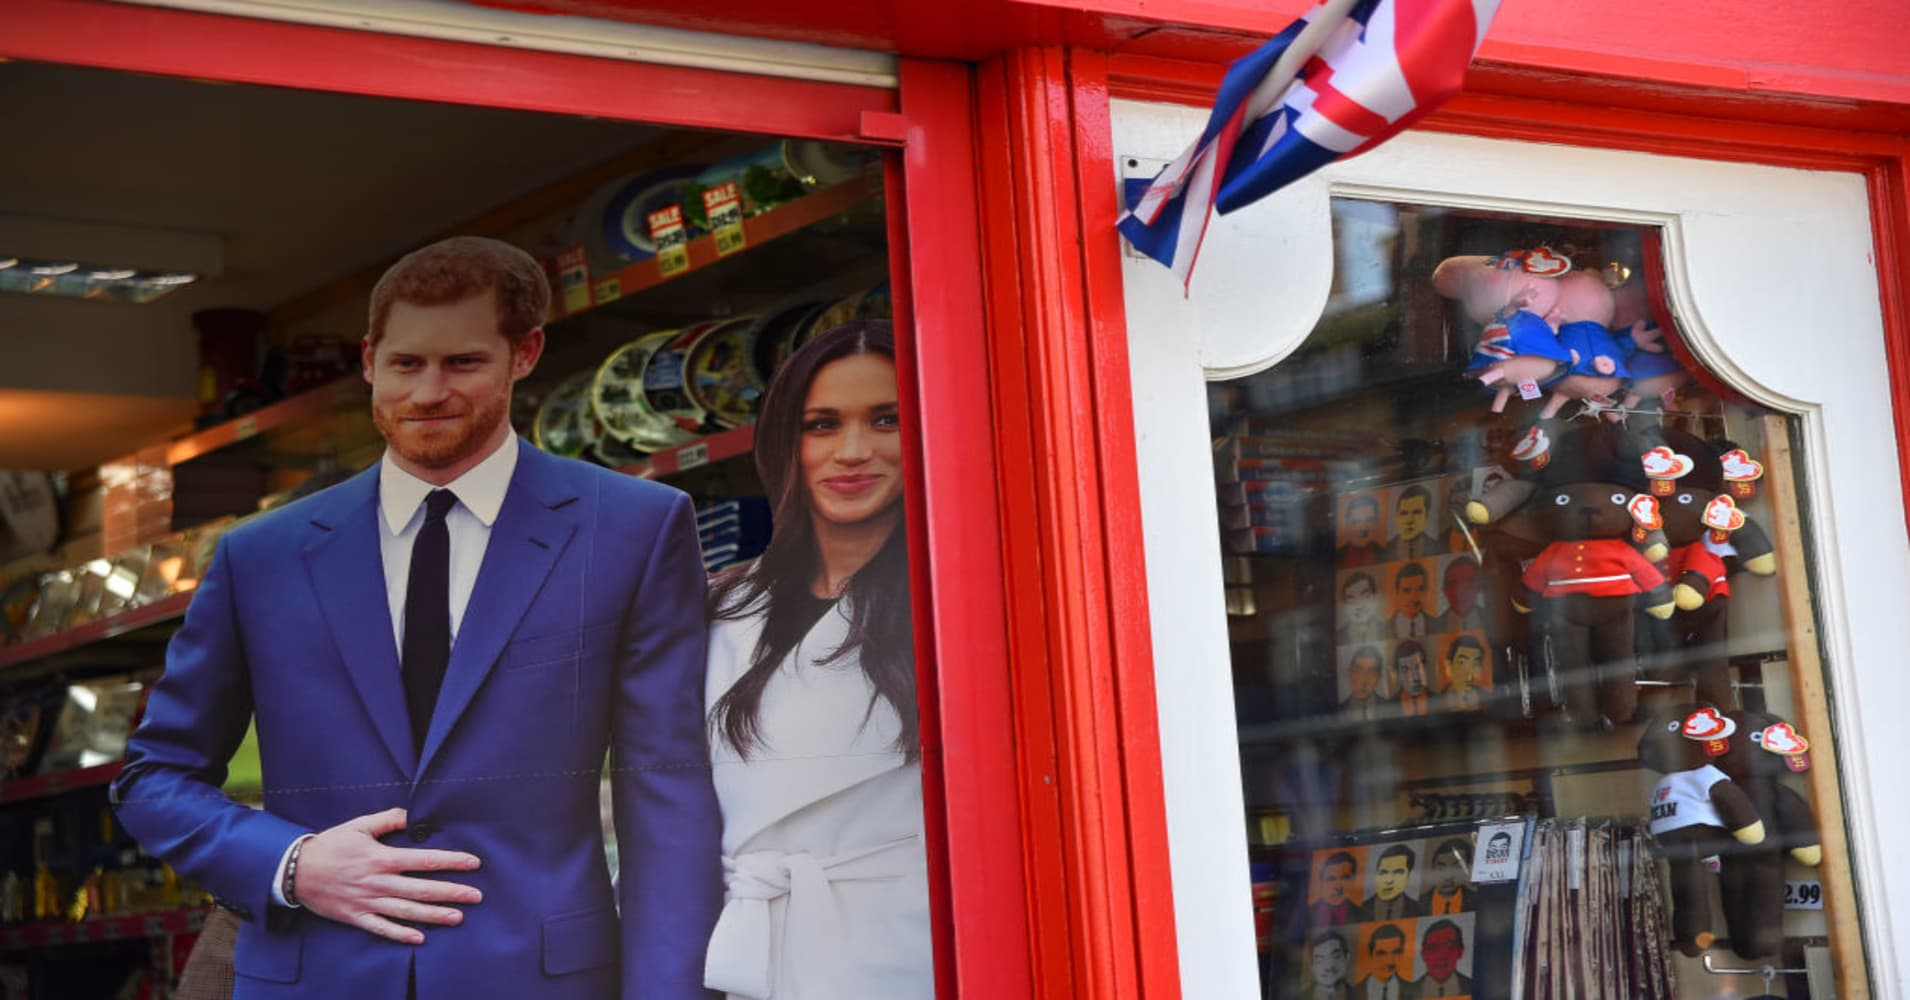 Prince Harry and Meghan Markle wedding: Cash bonanza for UK firms